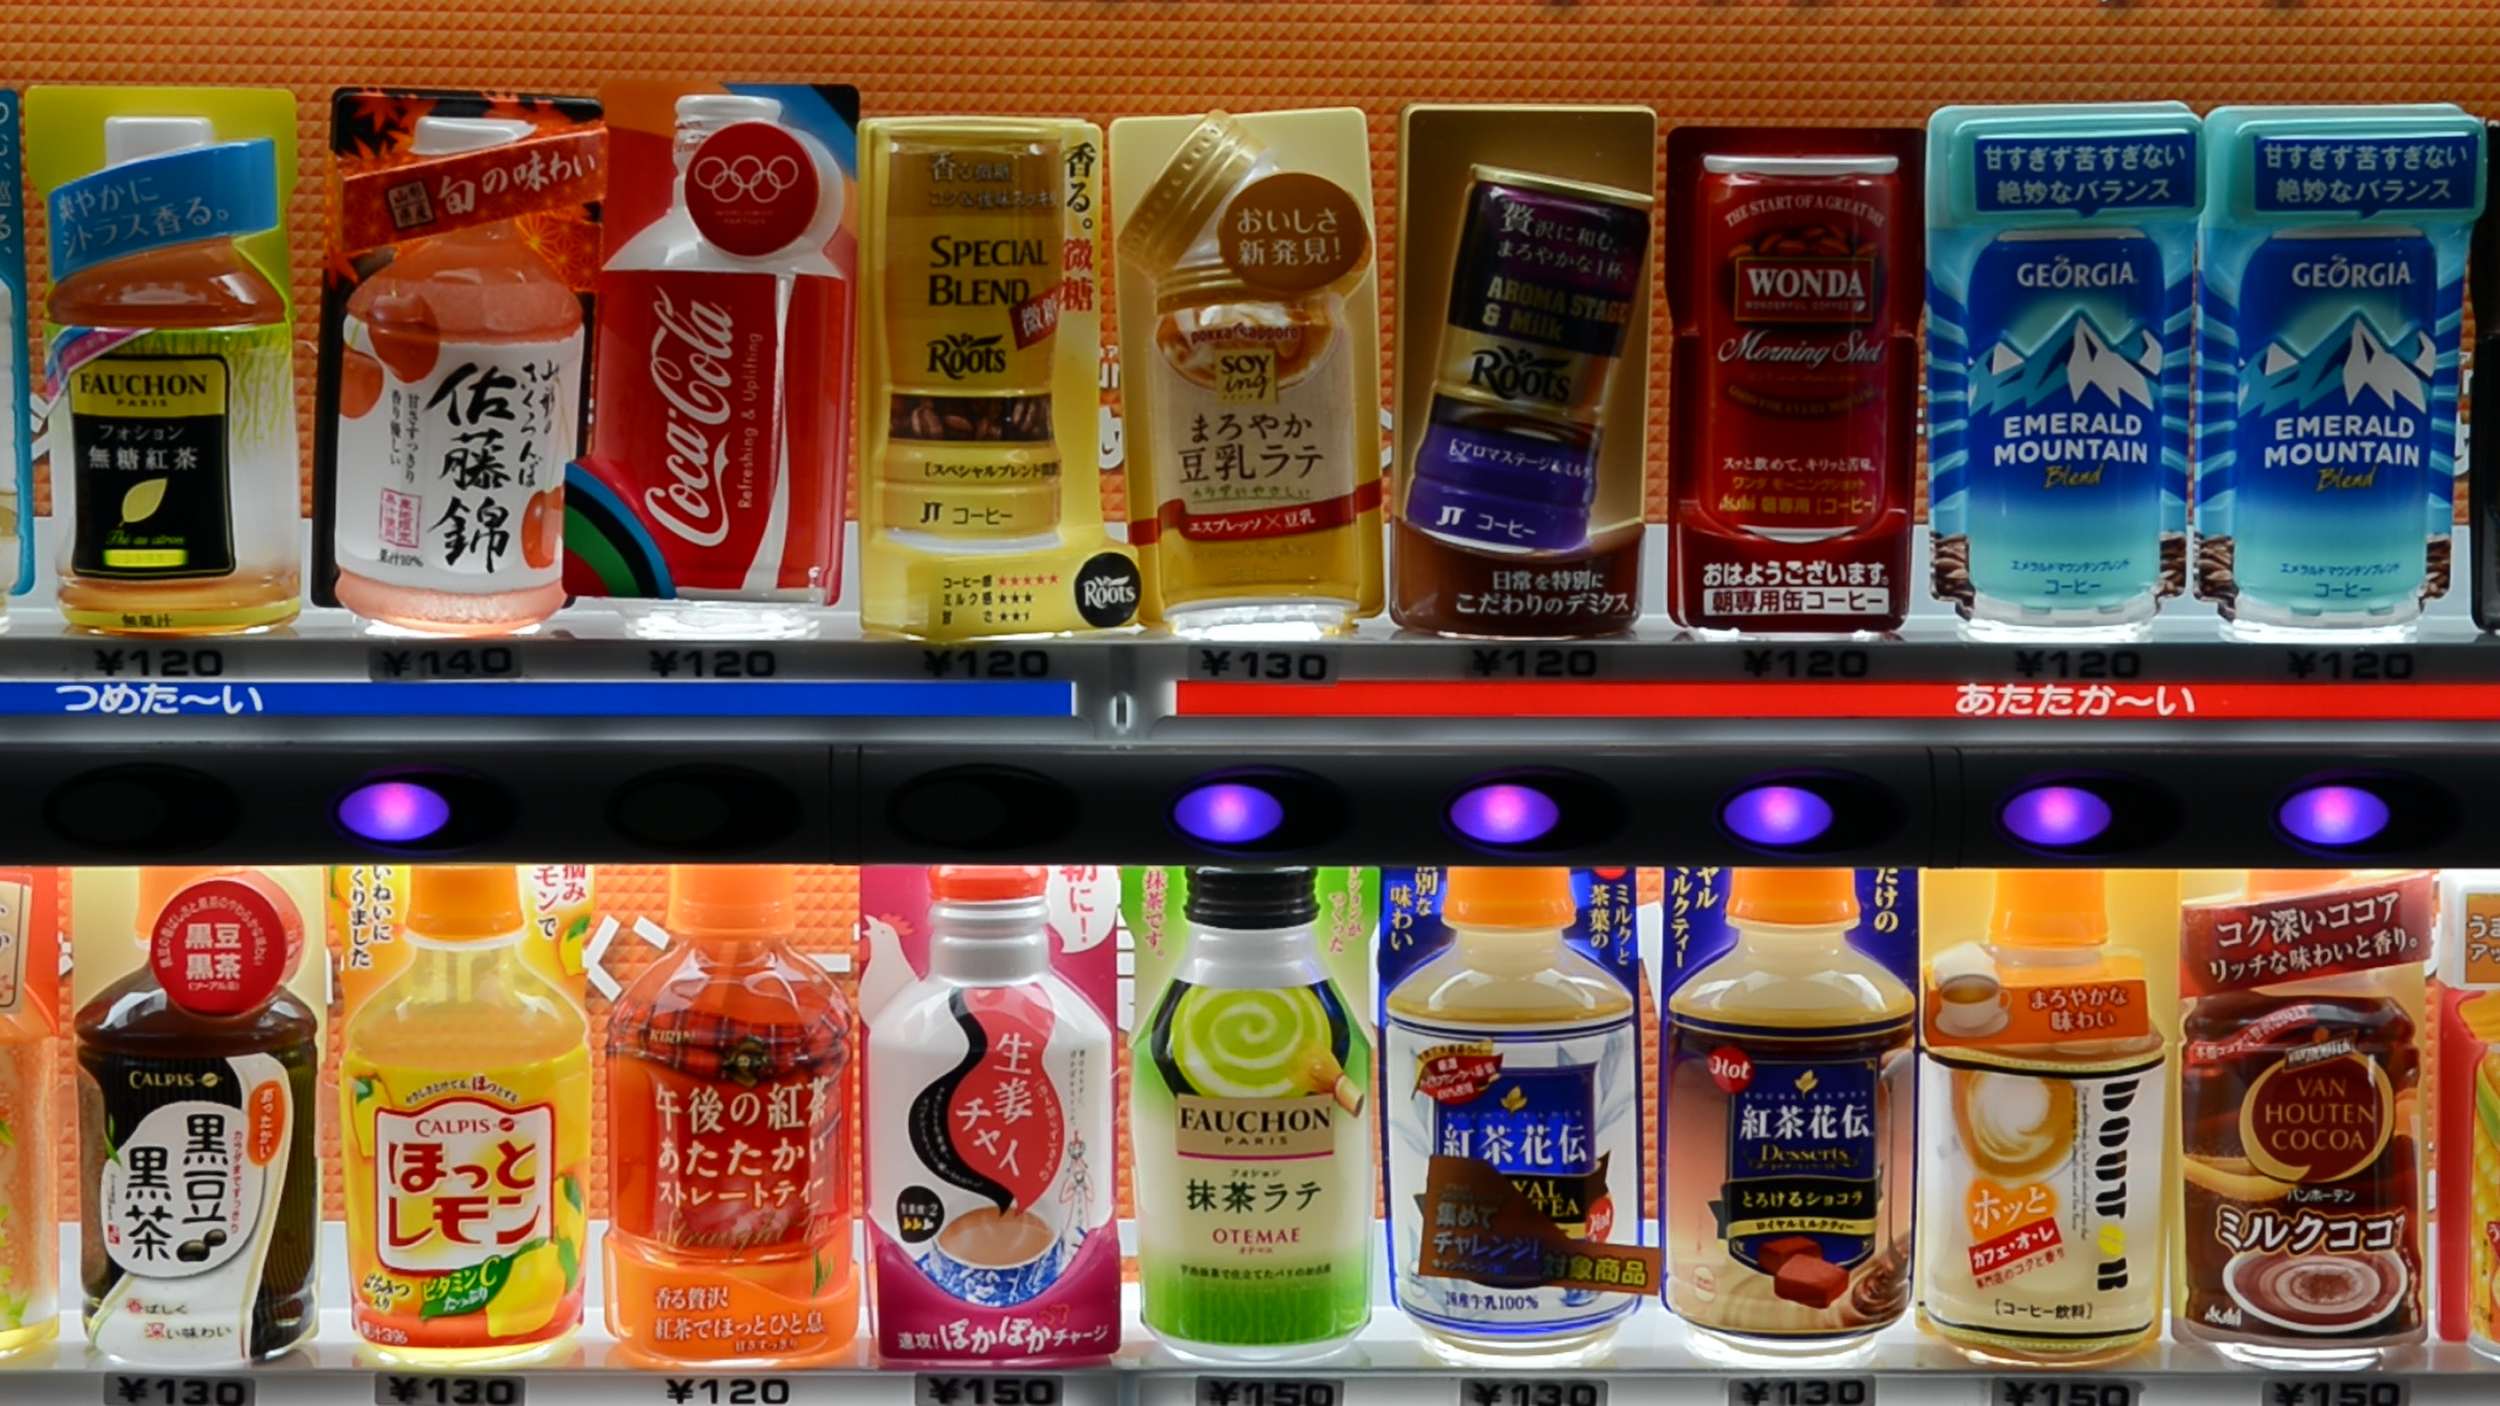 Commercial Food & Beverage - We design and manufacture equipment for a wide range of applications, including smart confection product vending and hot/cold beverage equipment.